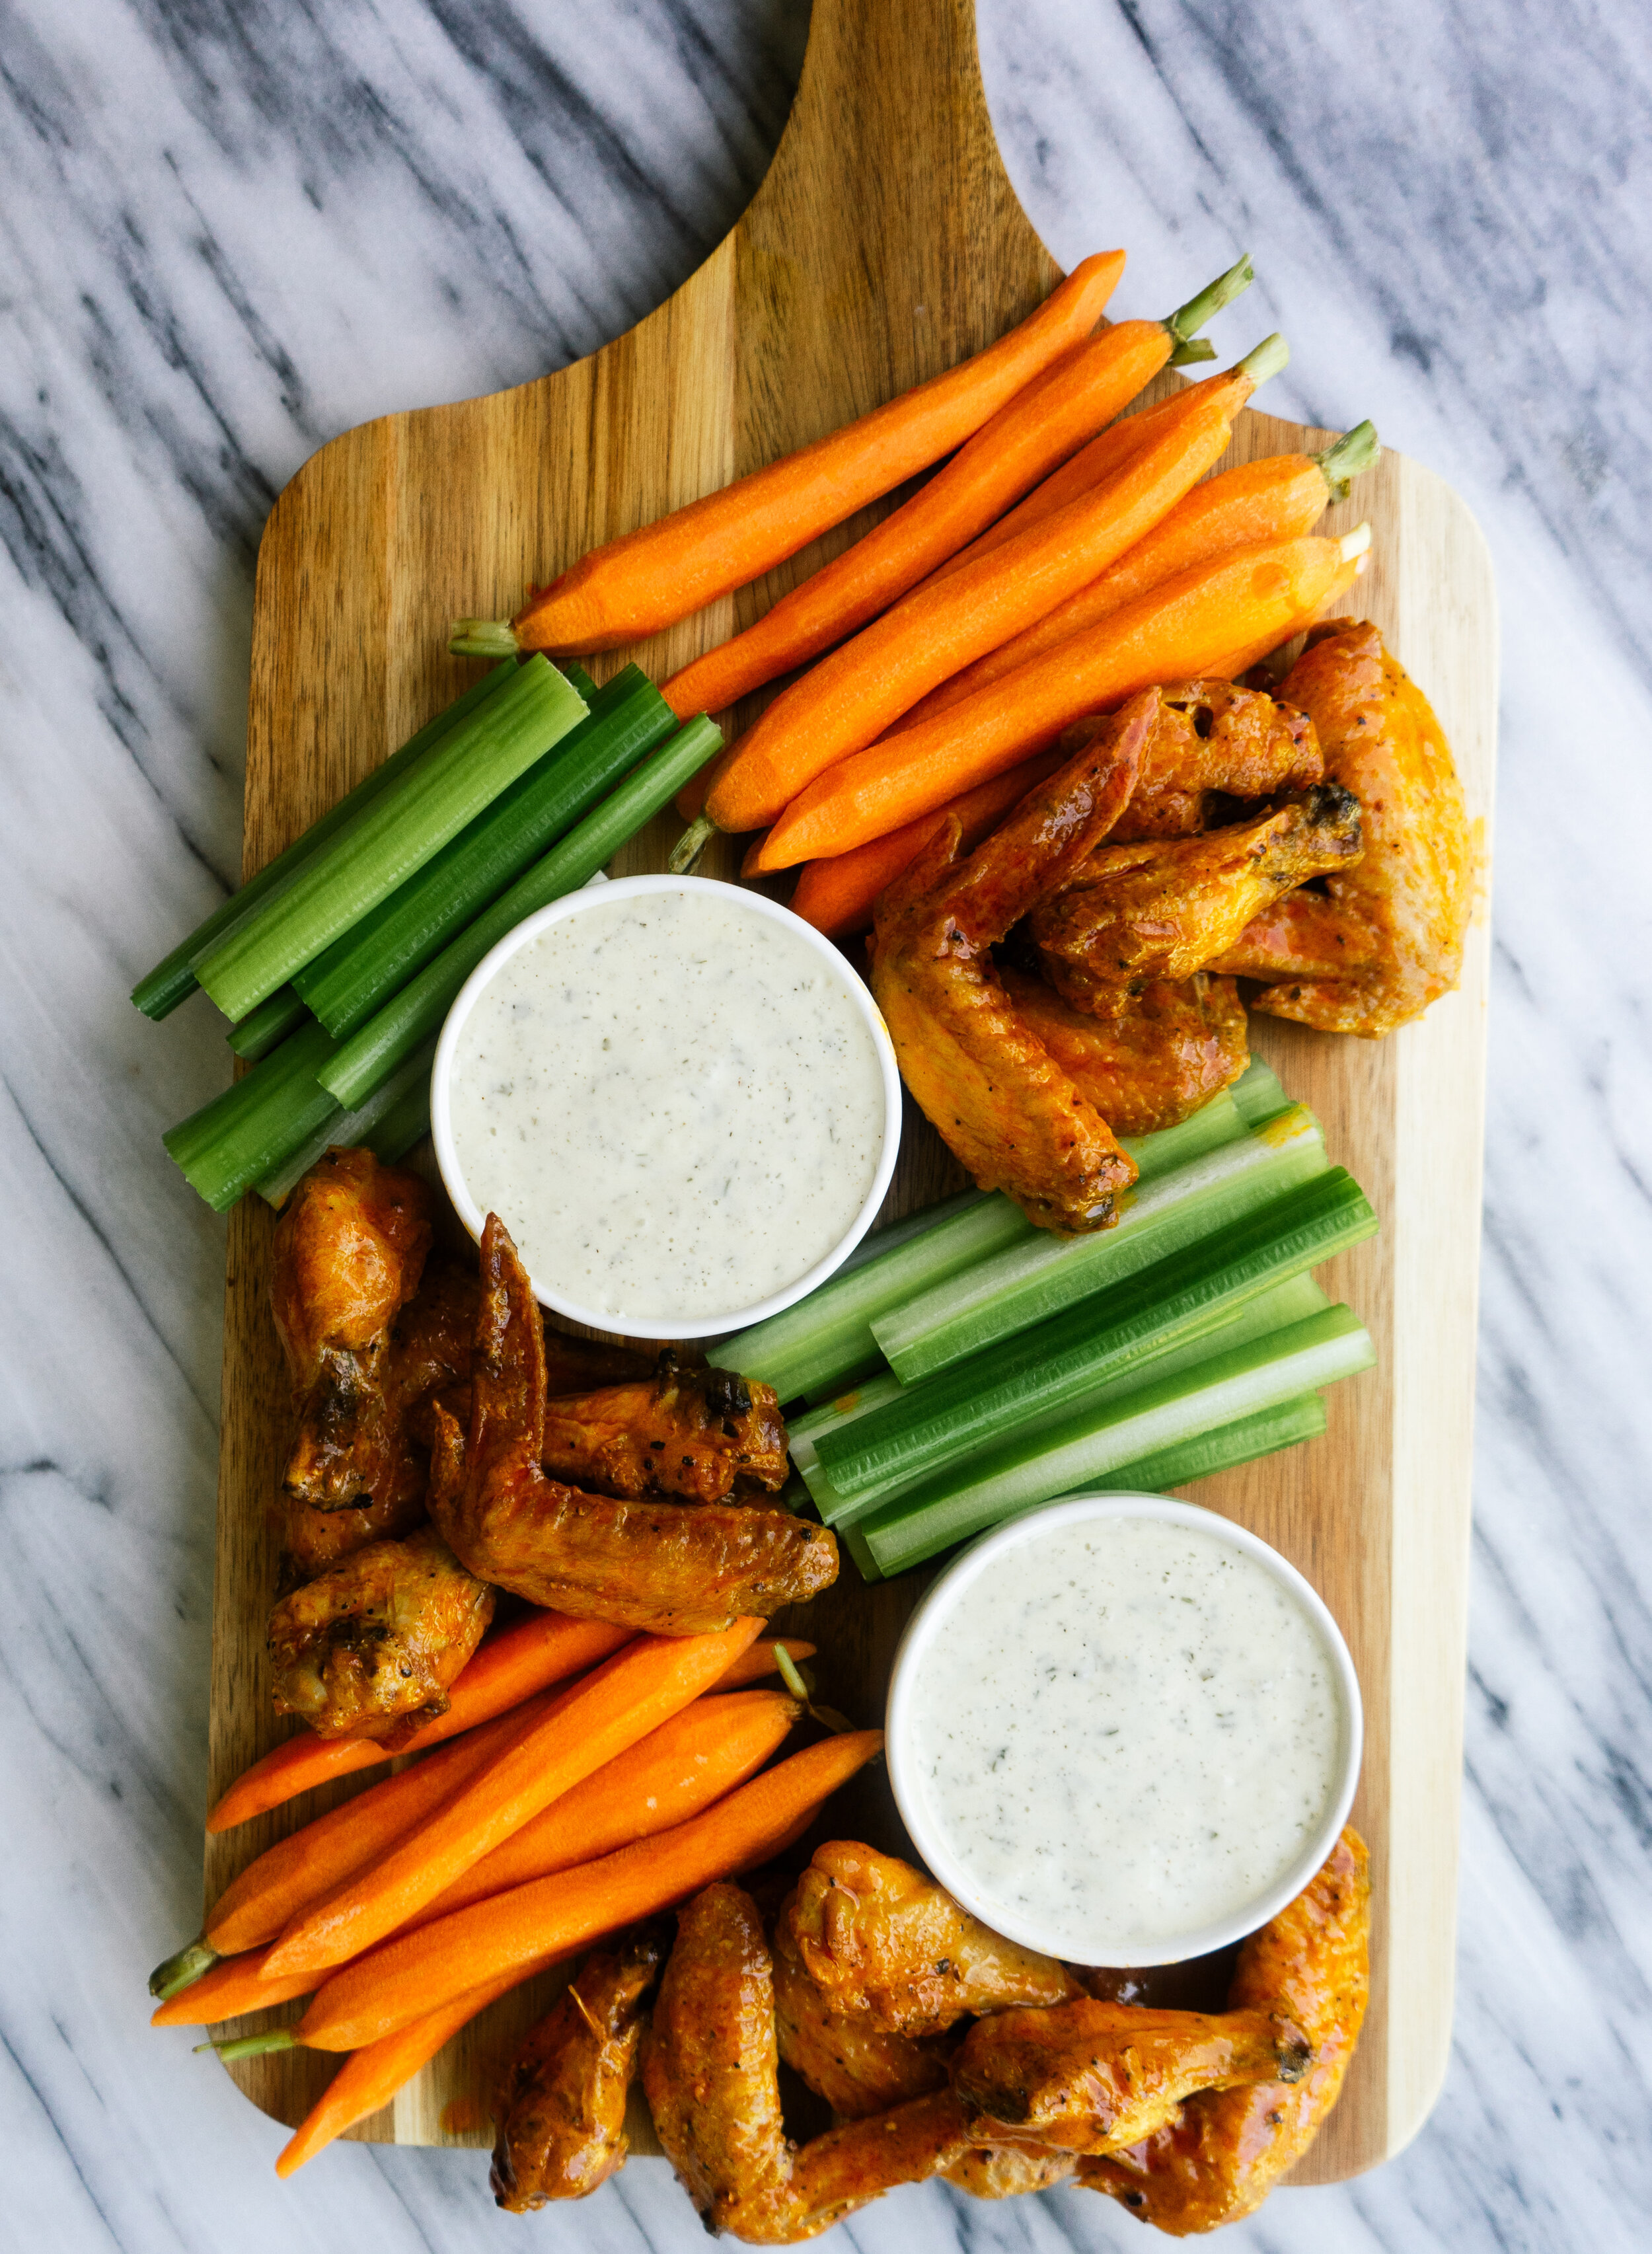 Make some Whole30, paleo and low carb buffalo wings in your air fryer! These delicious, simple and healthy buffalo wings can be made in less than 20 minutes with simple ingredients.